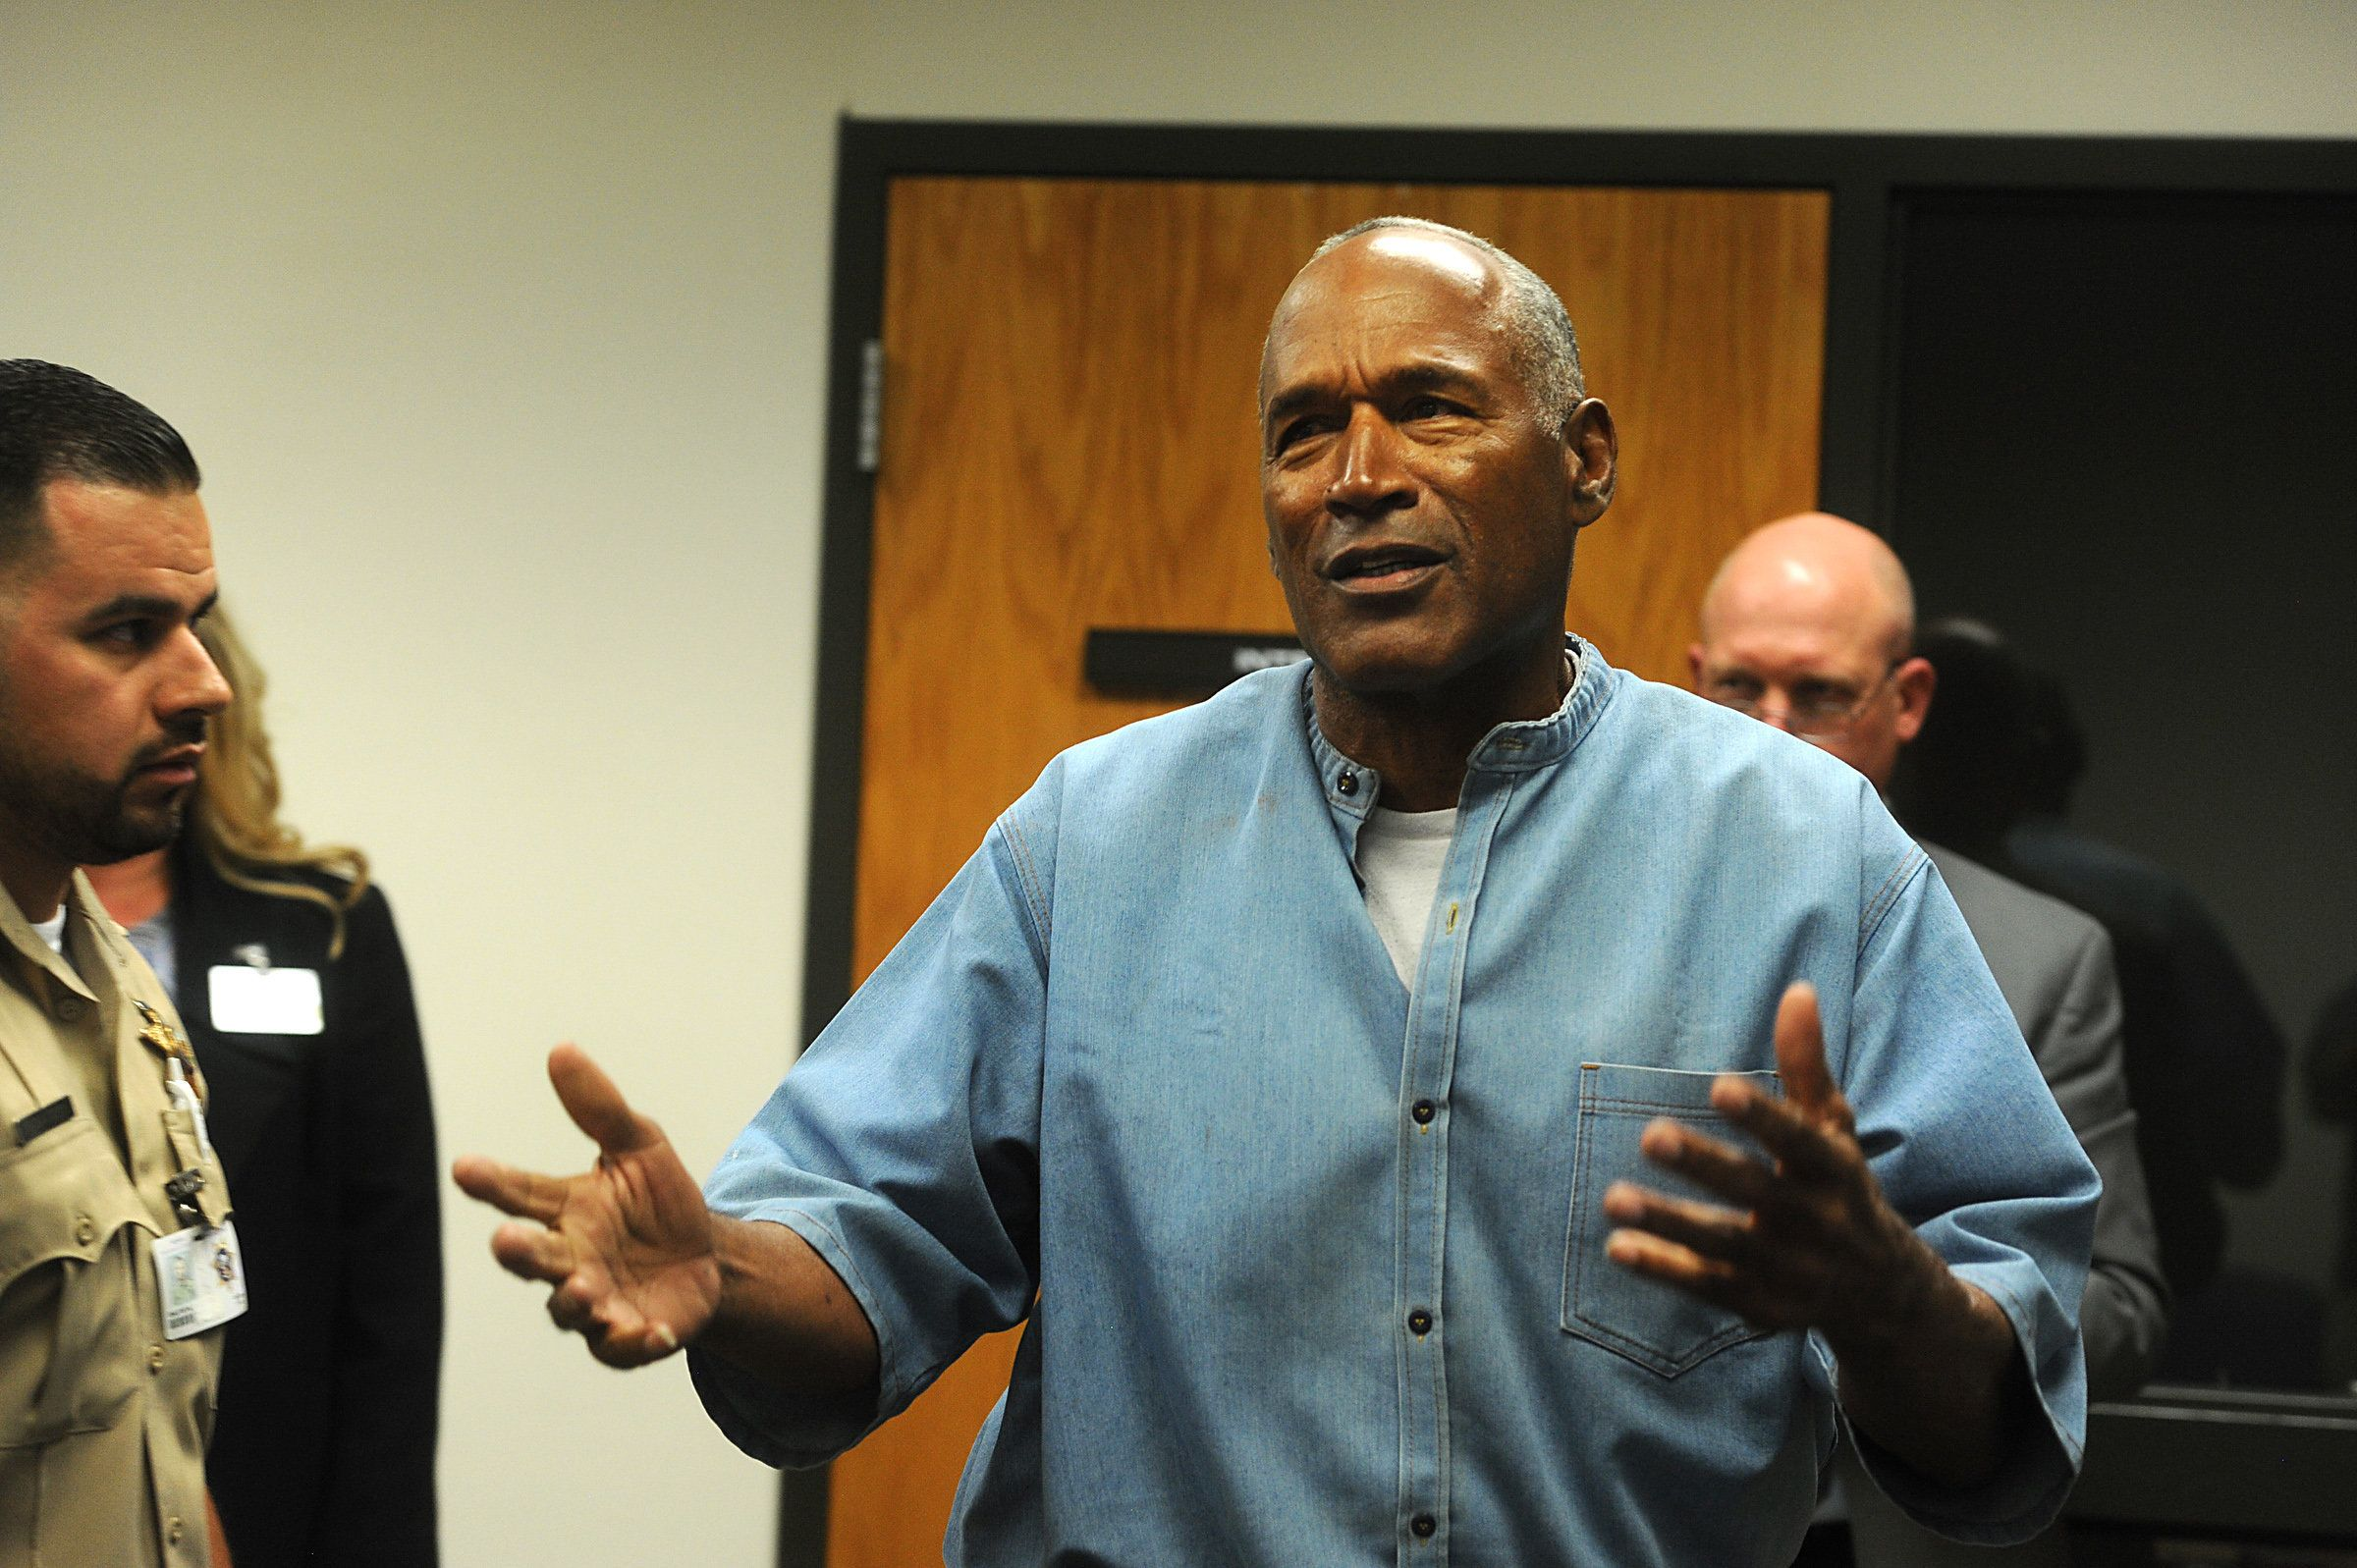 OJ Simpson freed on parole after 9 years